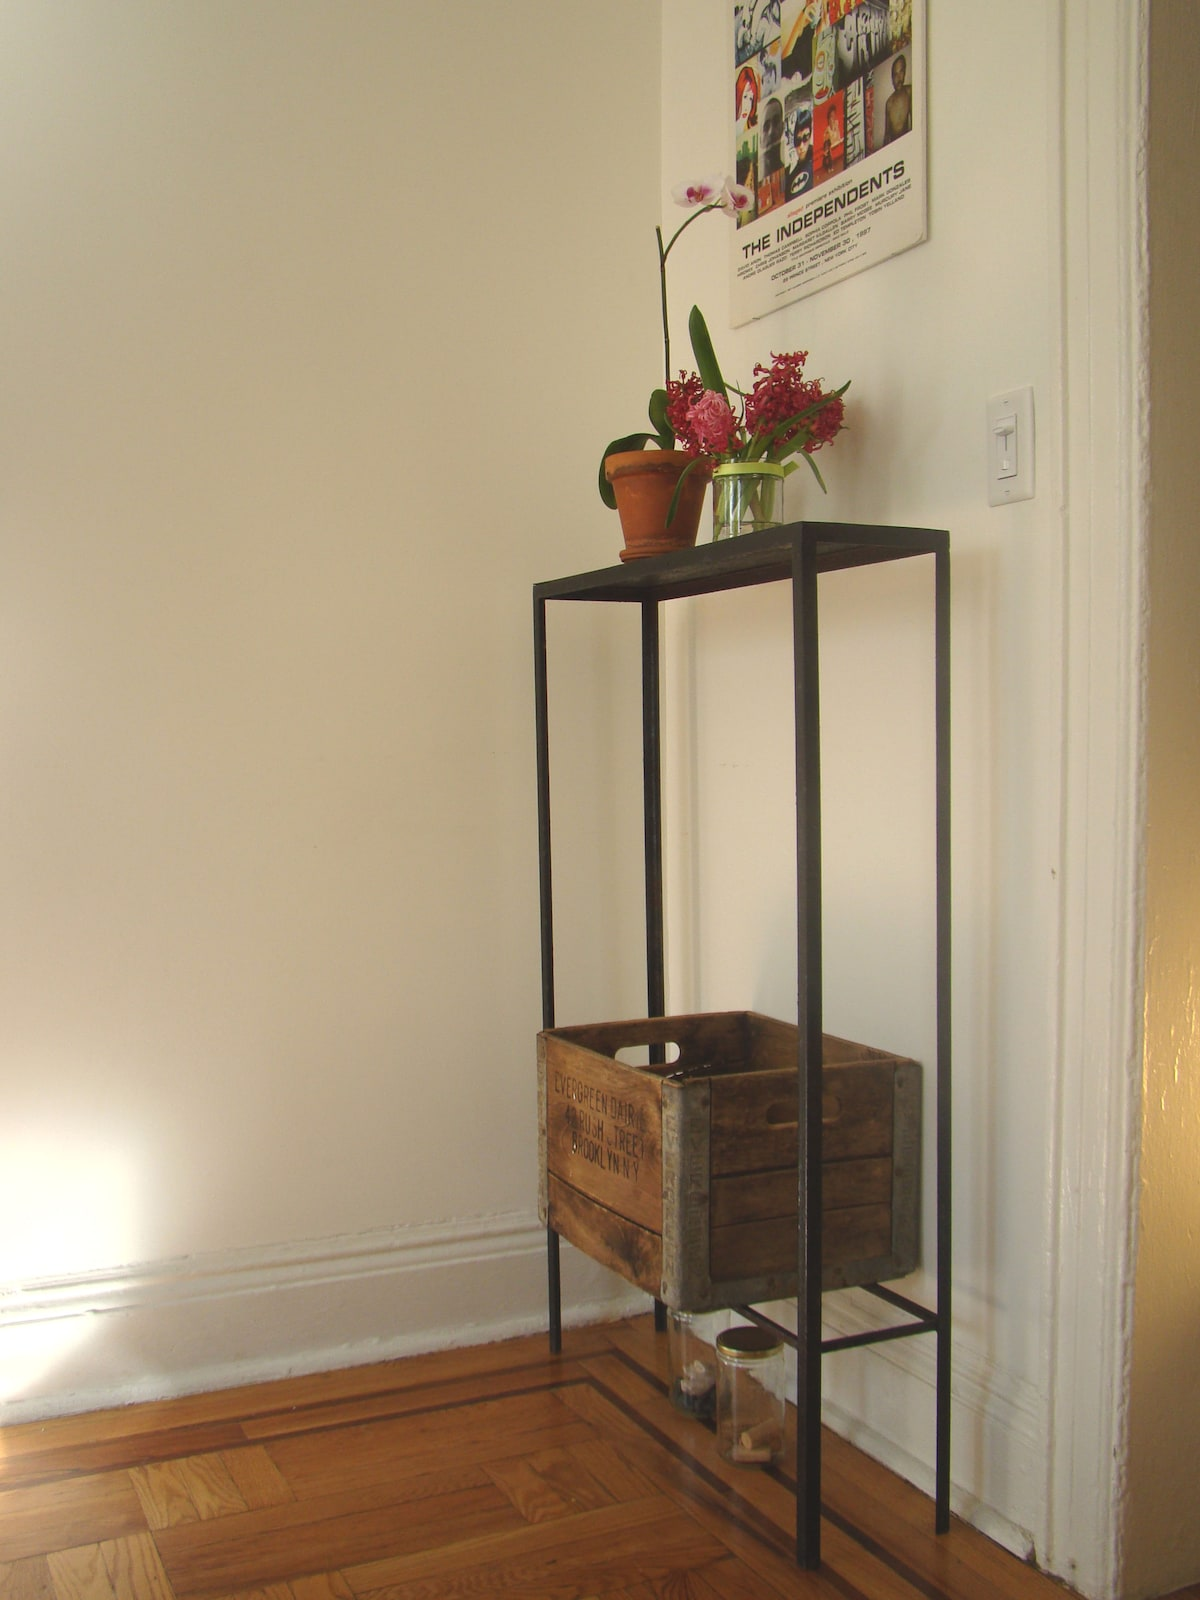 Sunny 1 or 2 BR apt in Boerum Hill